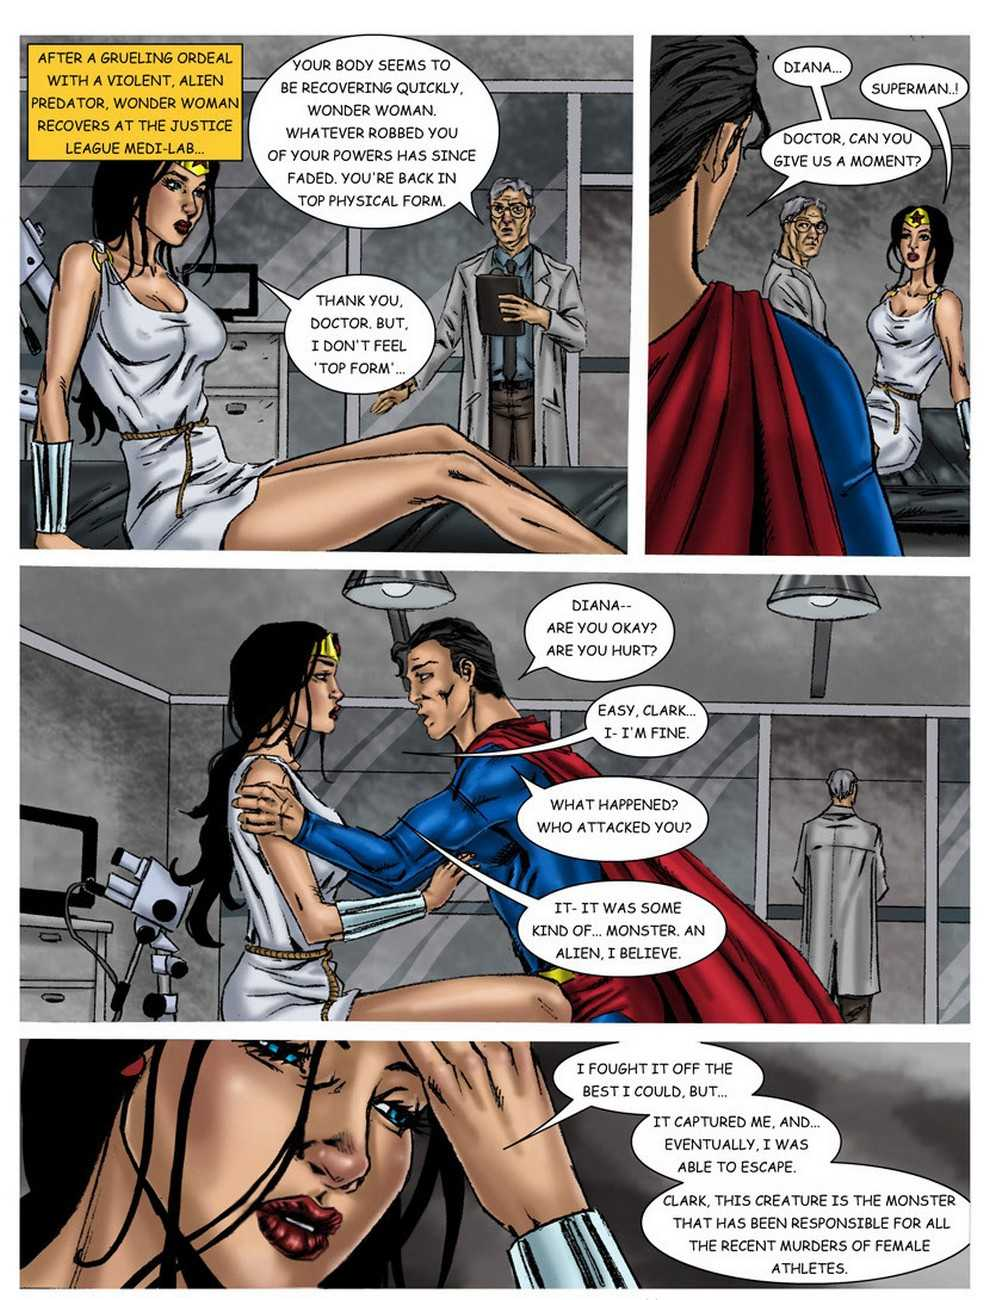 Wonderwoman vs alien xhamster nackt photo